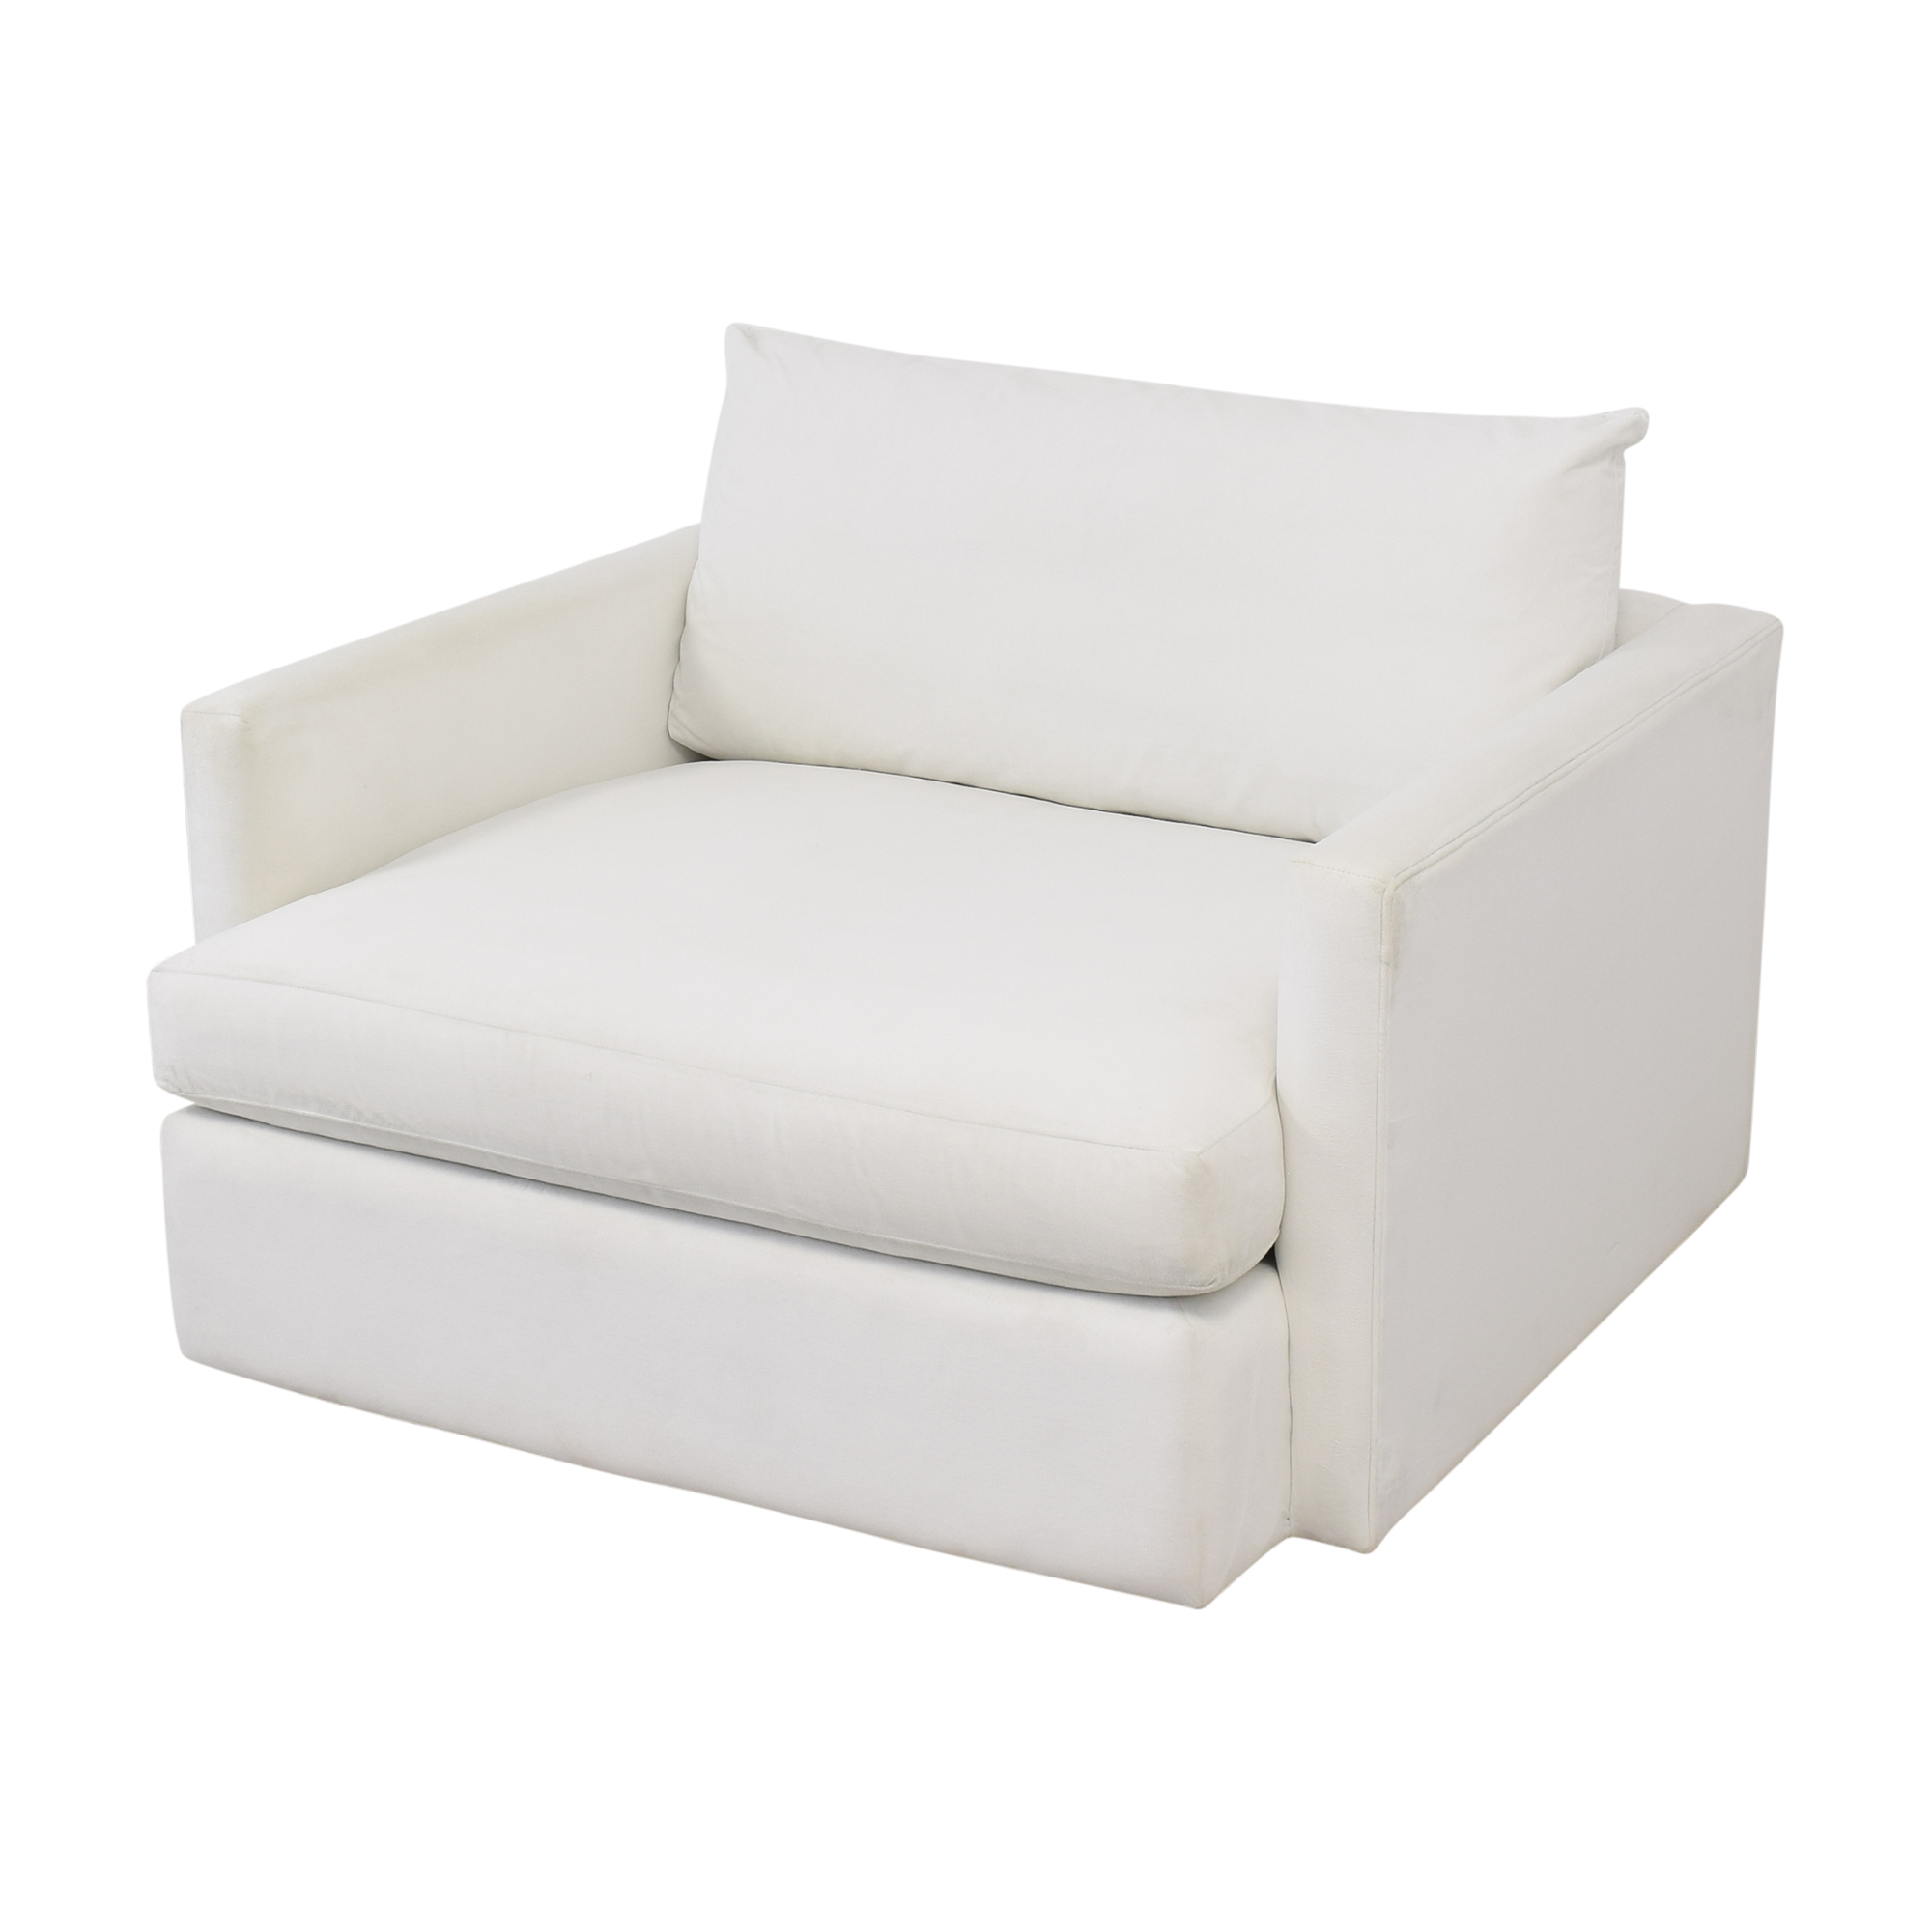 Crate & Barrel Crate & Barrel Lounge ii Chair and Half Loveseats